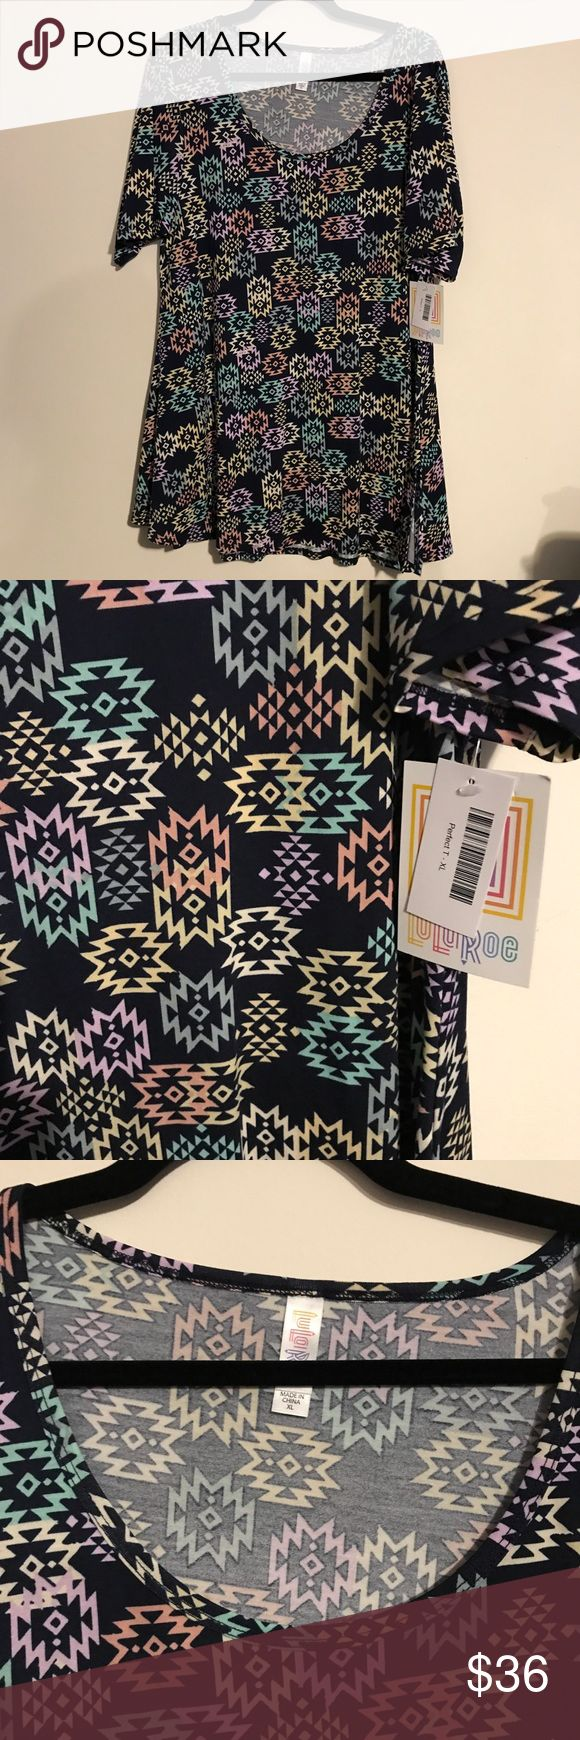 BNWT LuLaRoe XL Perfect Tee Navy w/ Aztec Design BNWT LuLaRoe XL Perfect Tee Navy Background w/ Aztec Design! Multiple Easter Egg Colors. The perfect tee is a short sleeve top that's a longer style with slits on side, perfect to wear with leggings or many other bottoms- skirts, jeans, you name it! LuLaRoe Tops Tees - Short Sleeve